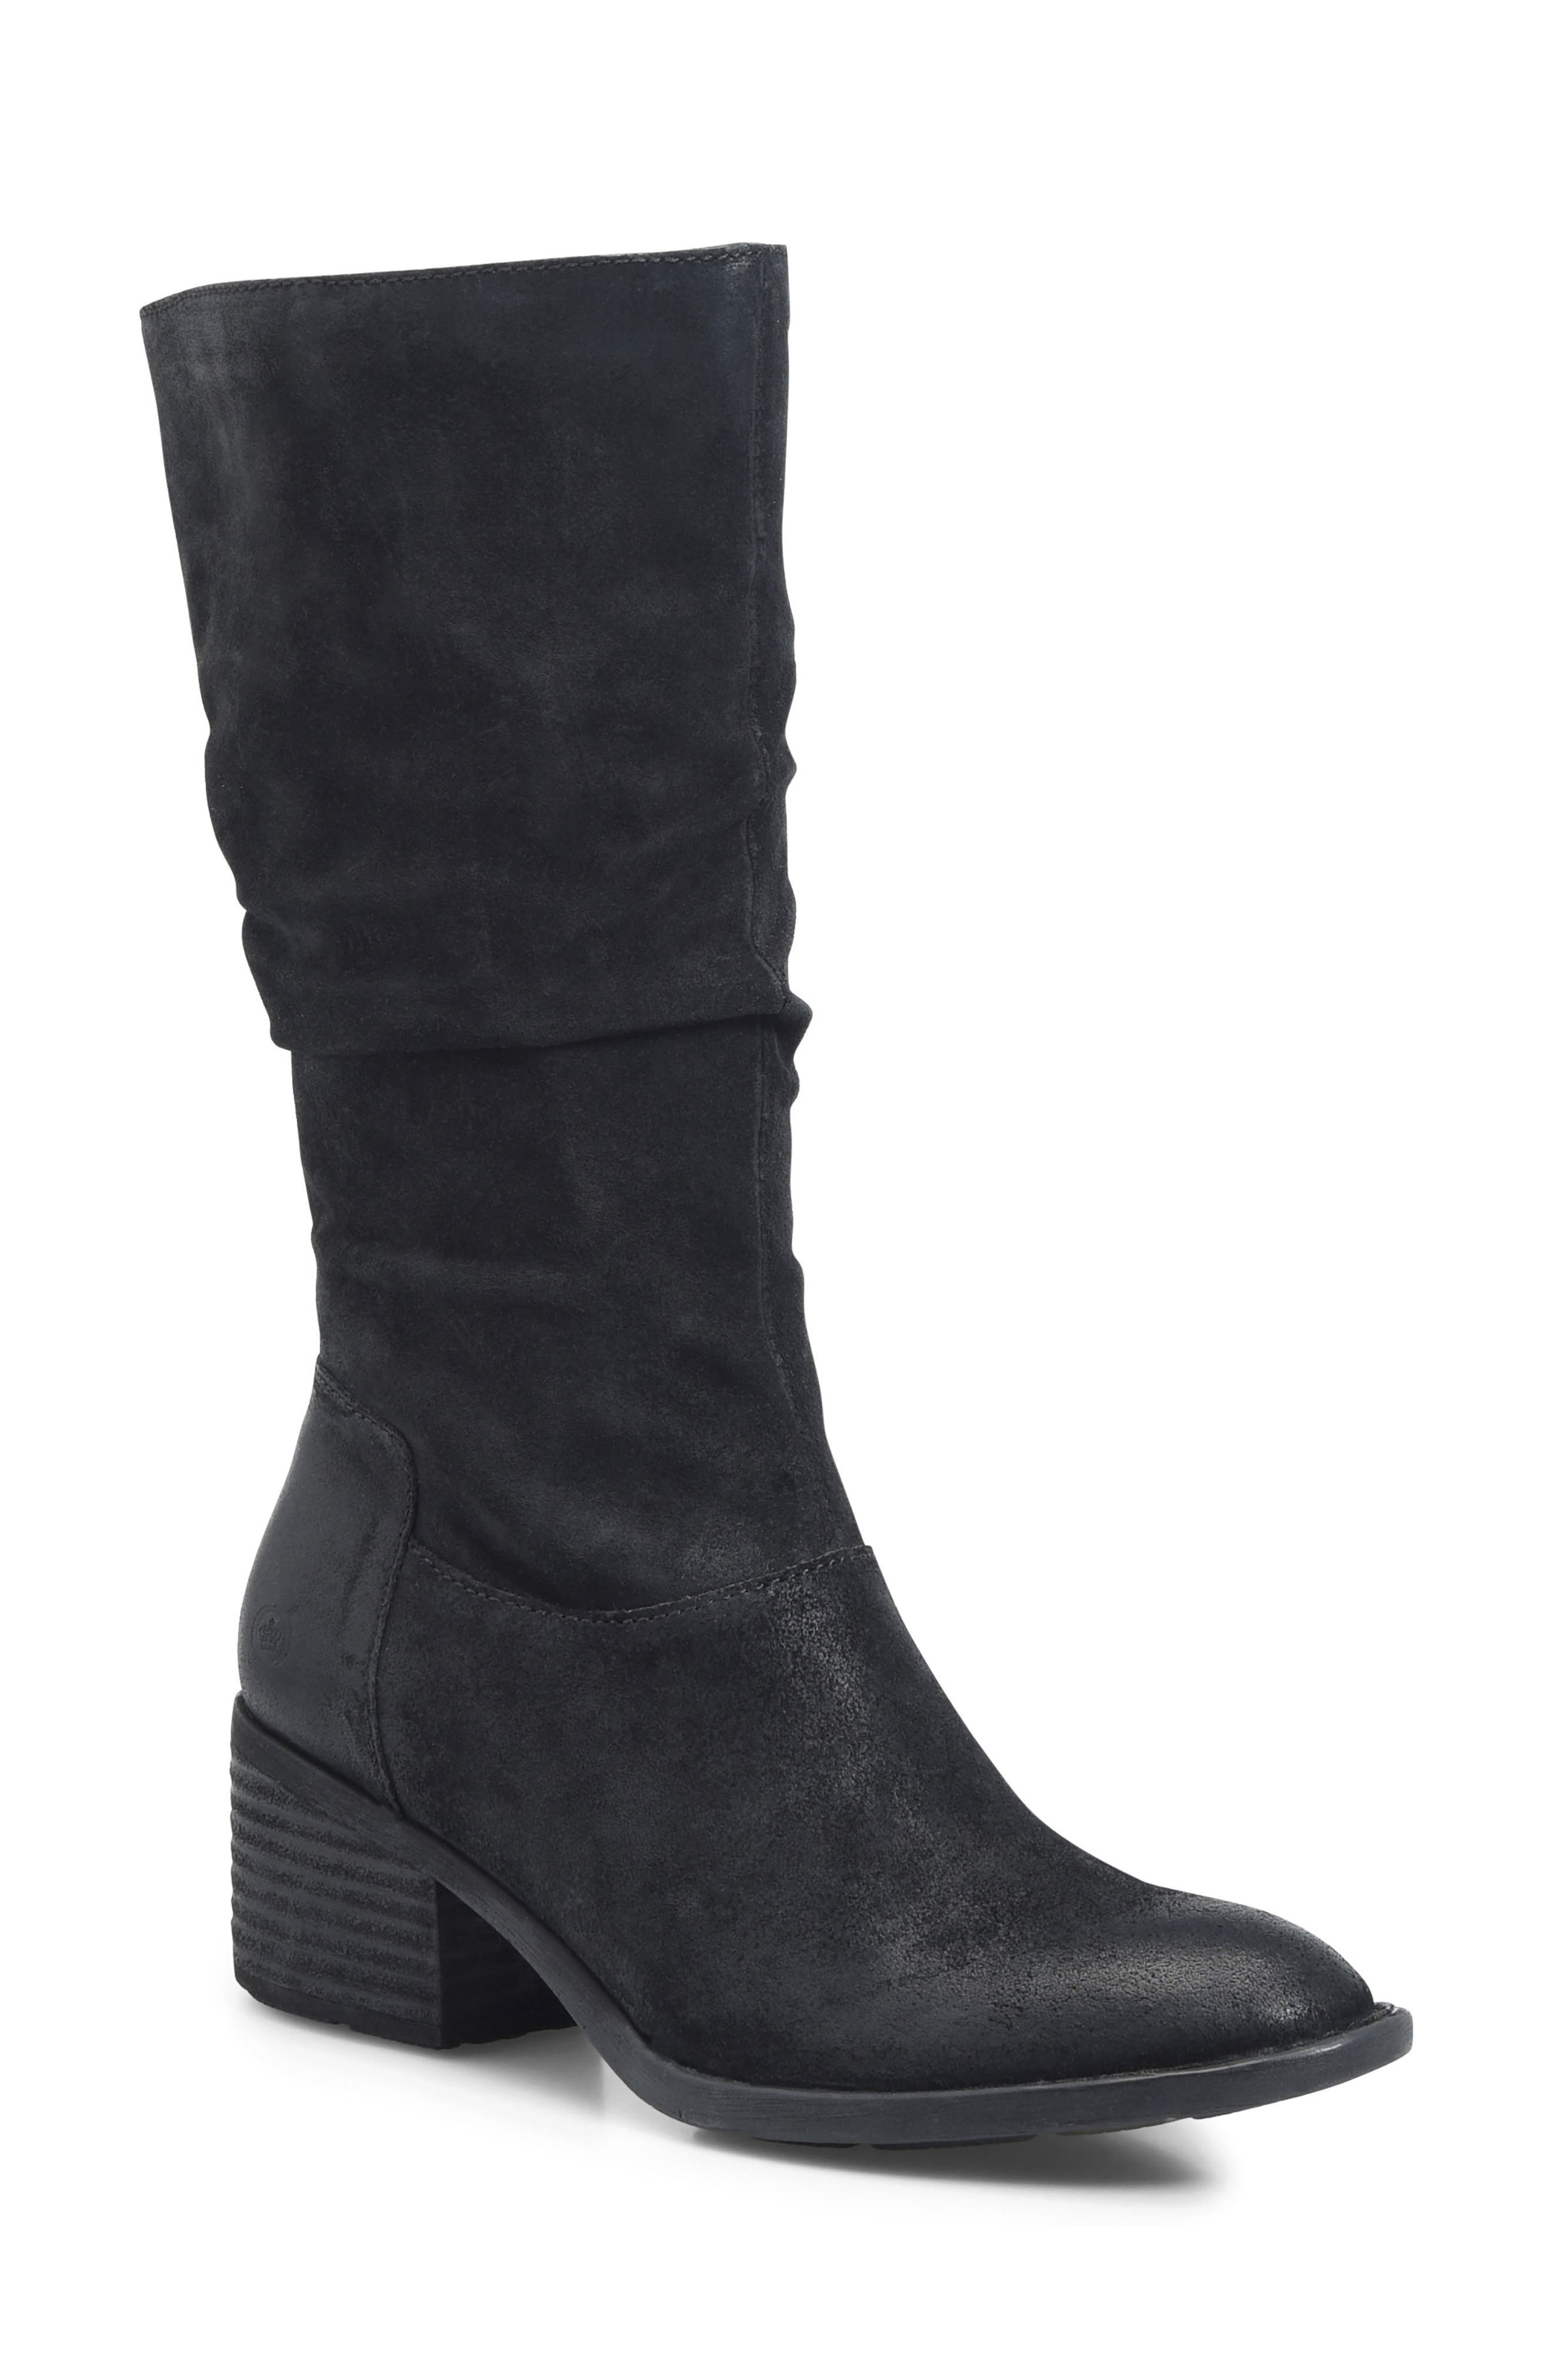 BØRN,                             Peavy Slouch Boot,                             Main thumbnail 1, color,                             001